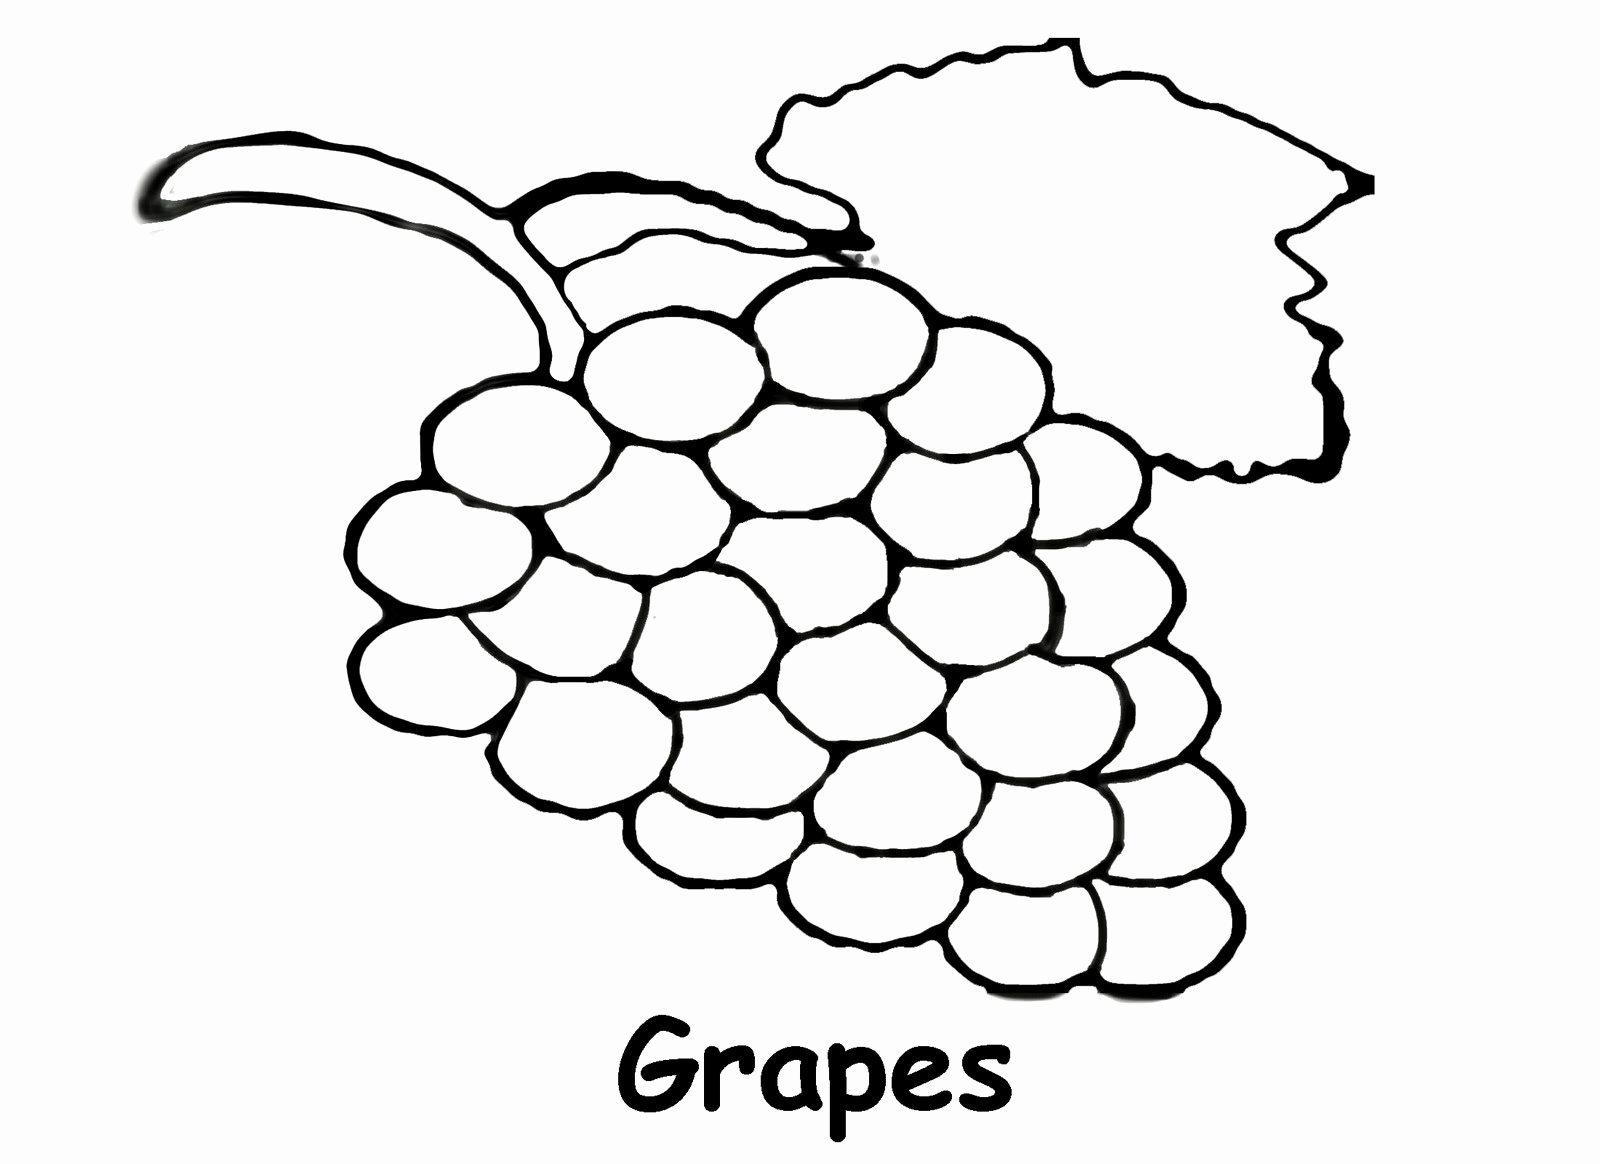 Grapes clipart coloring sheet. Page beautiful pages printable